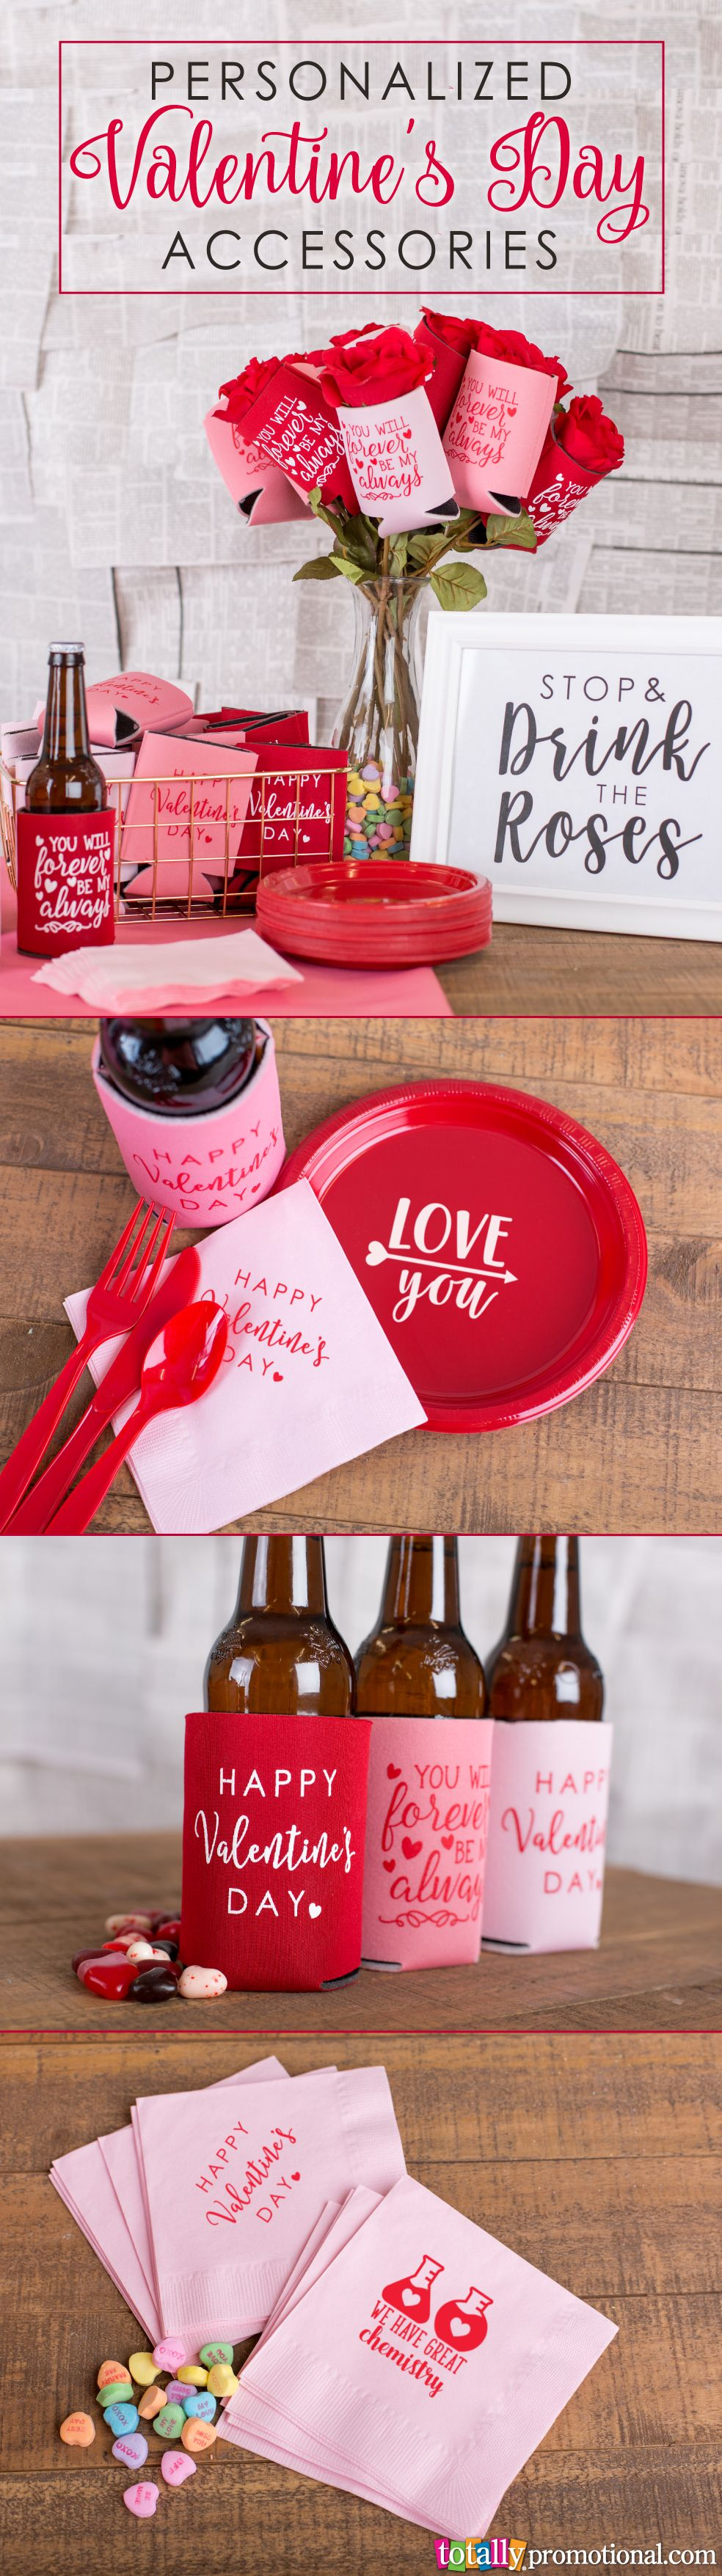 Create Your Own Personalized Valentine S Day Gifts For